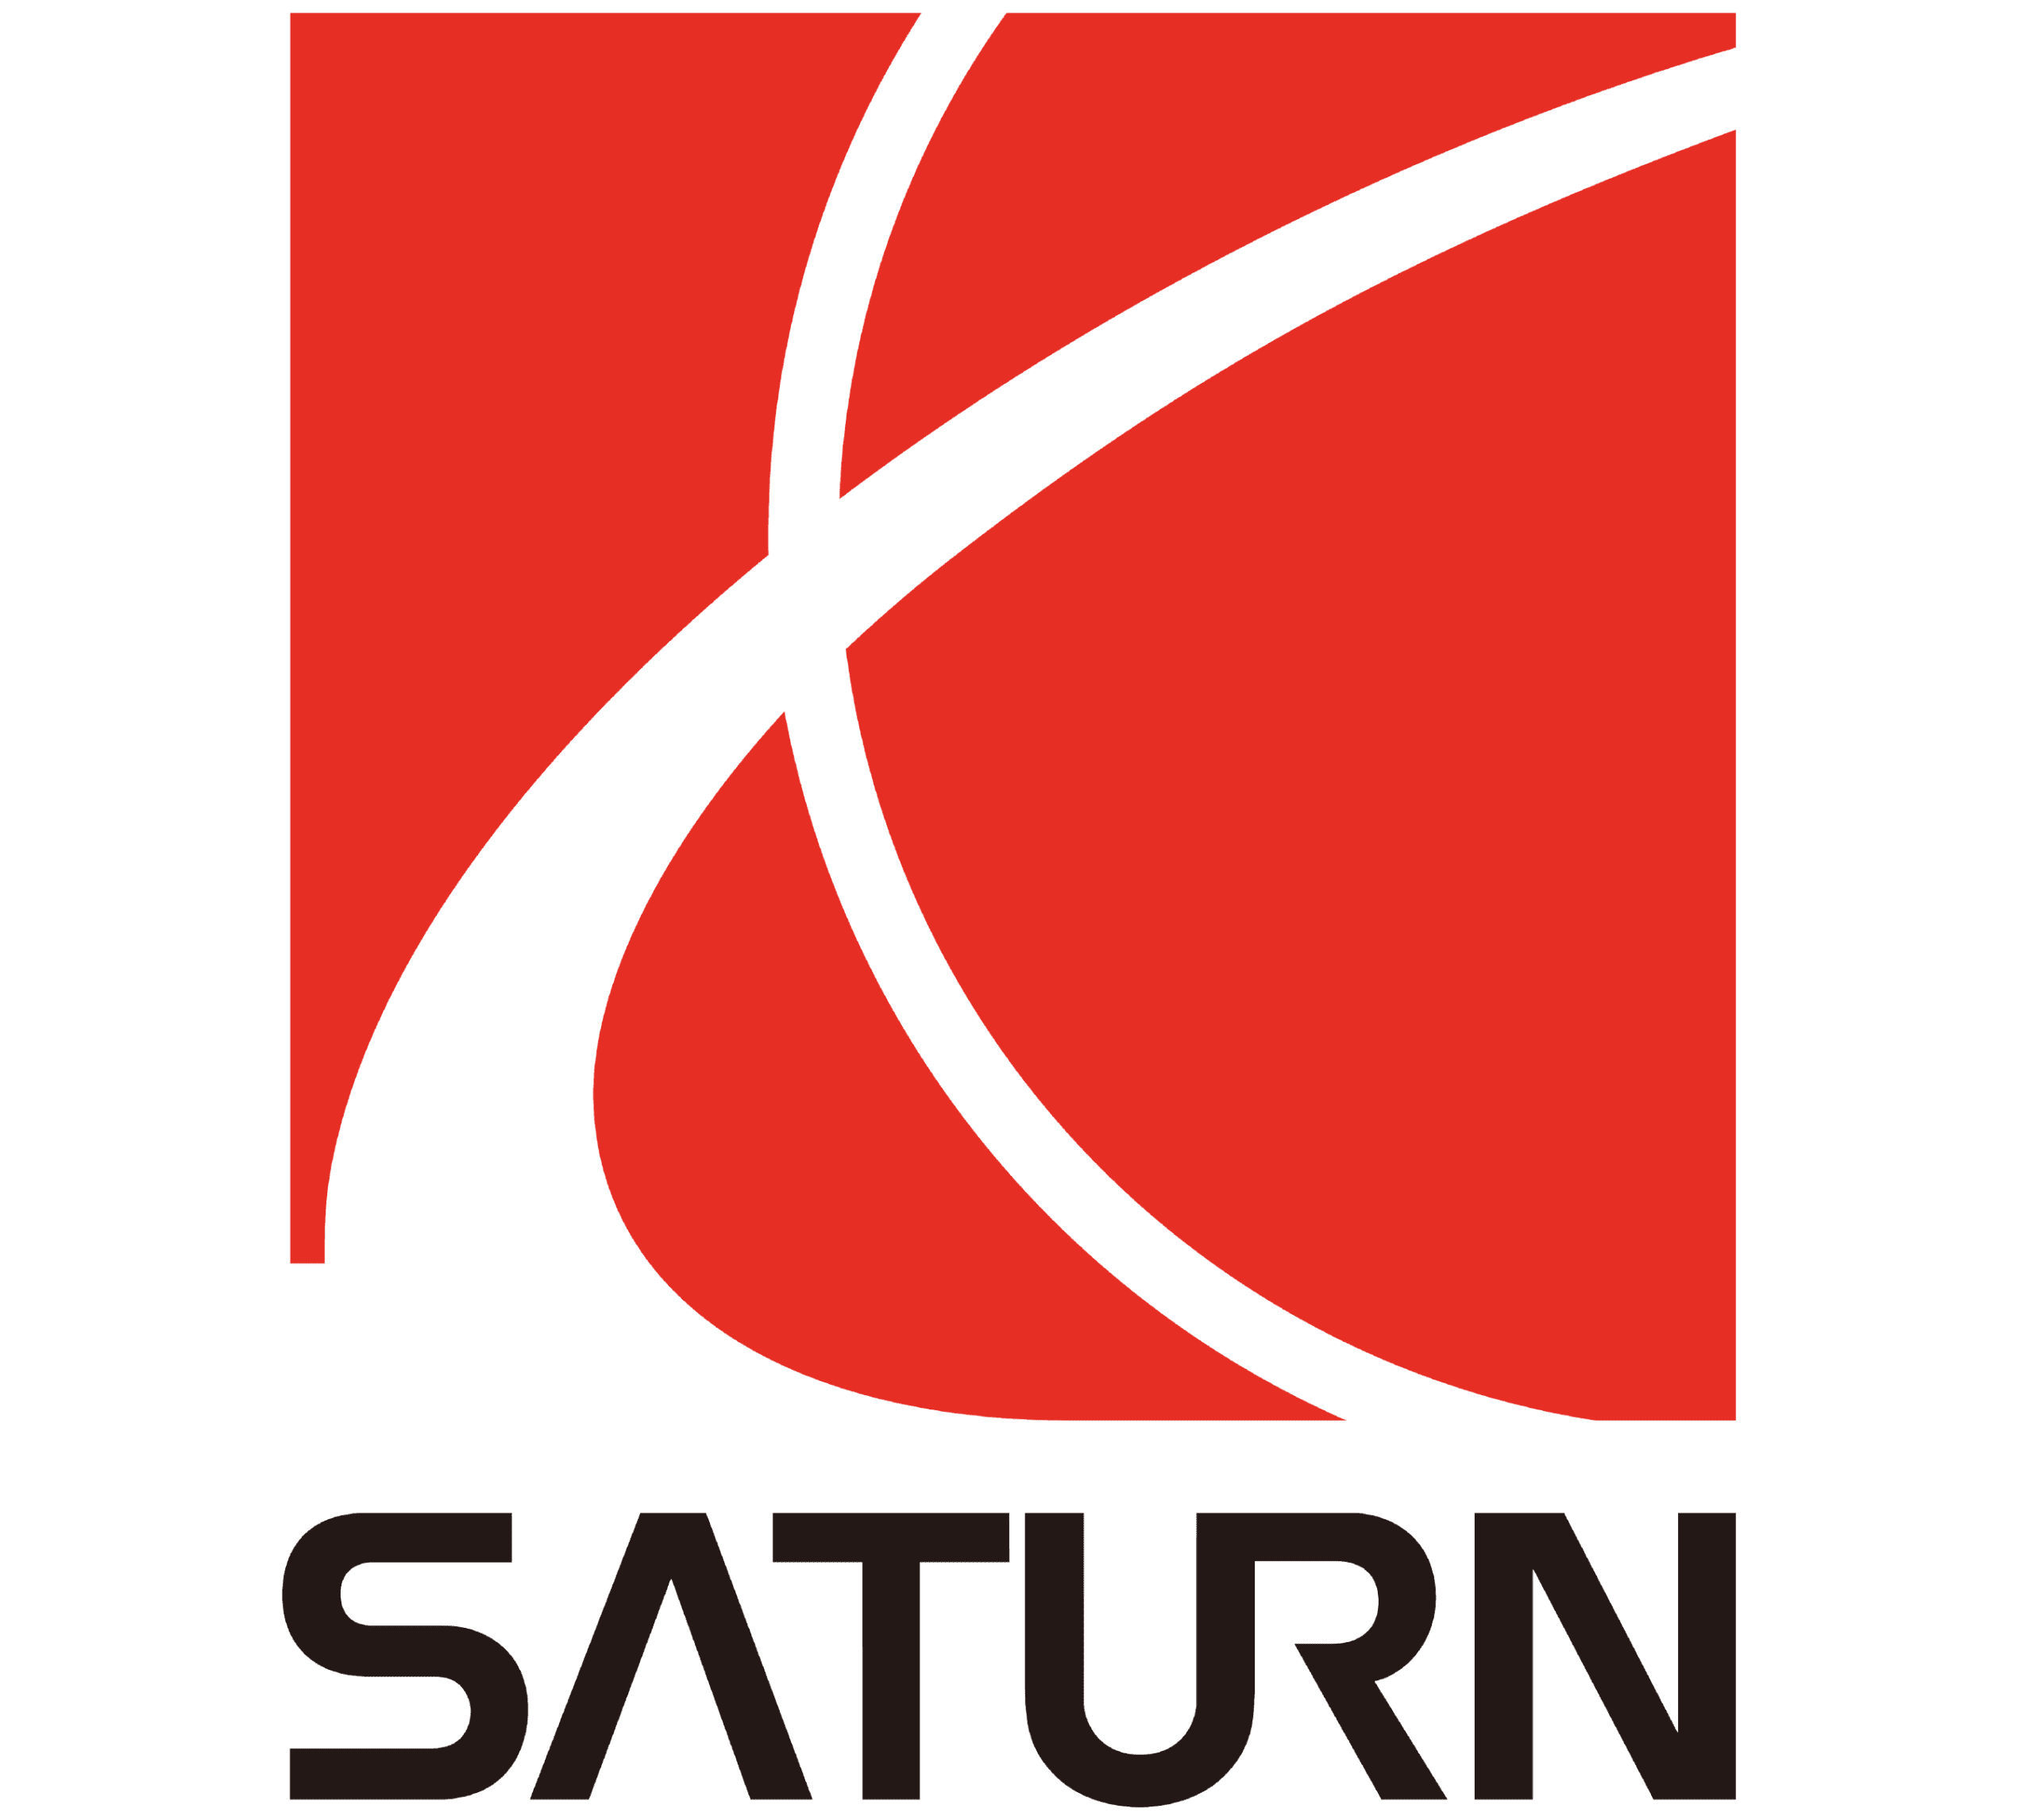 Saturn Key Replacement